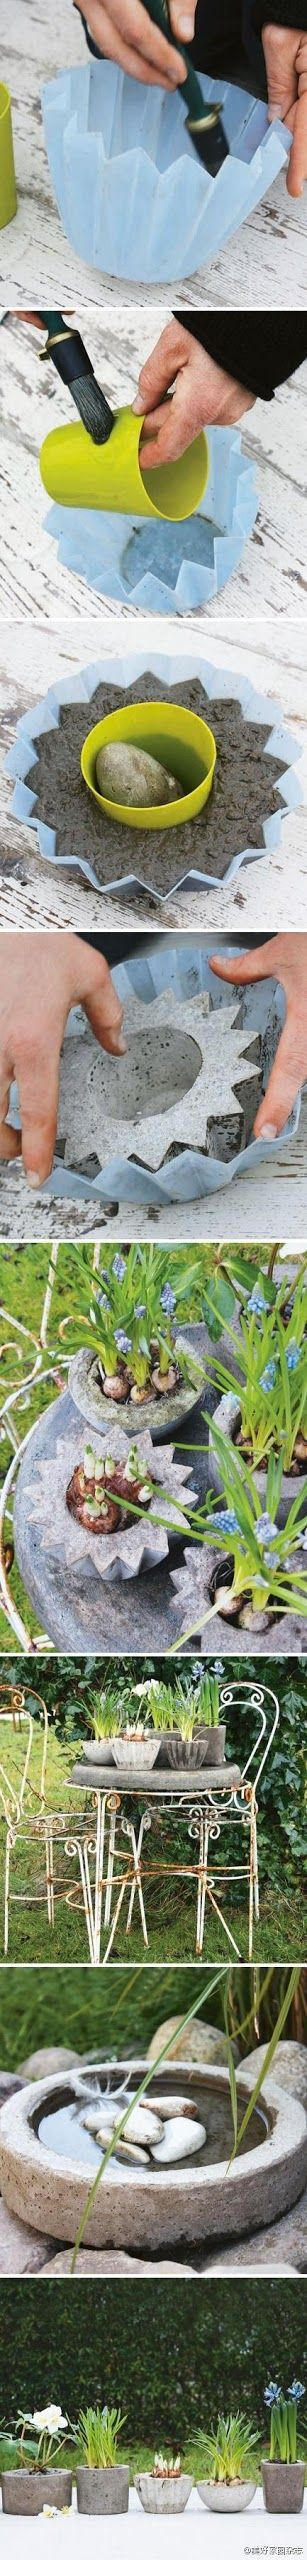 How To Make a Pot Planter From Concrete